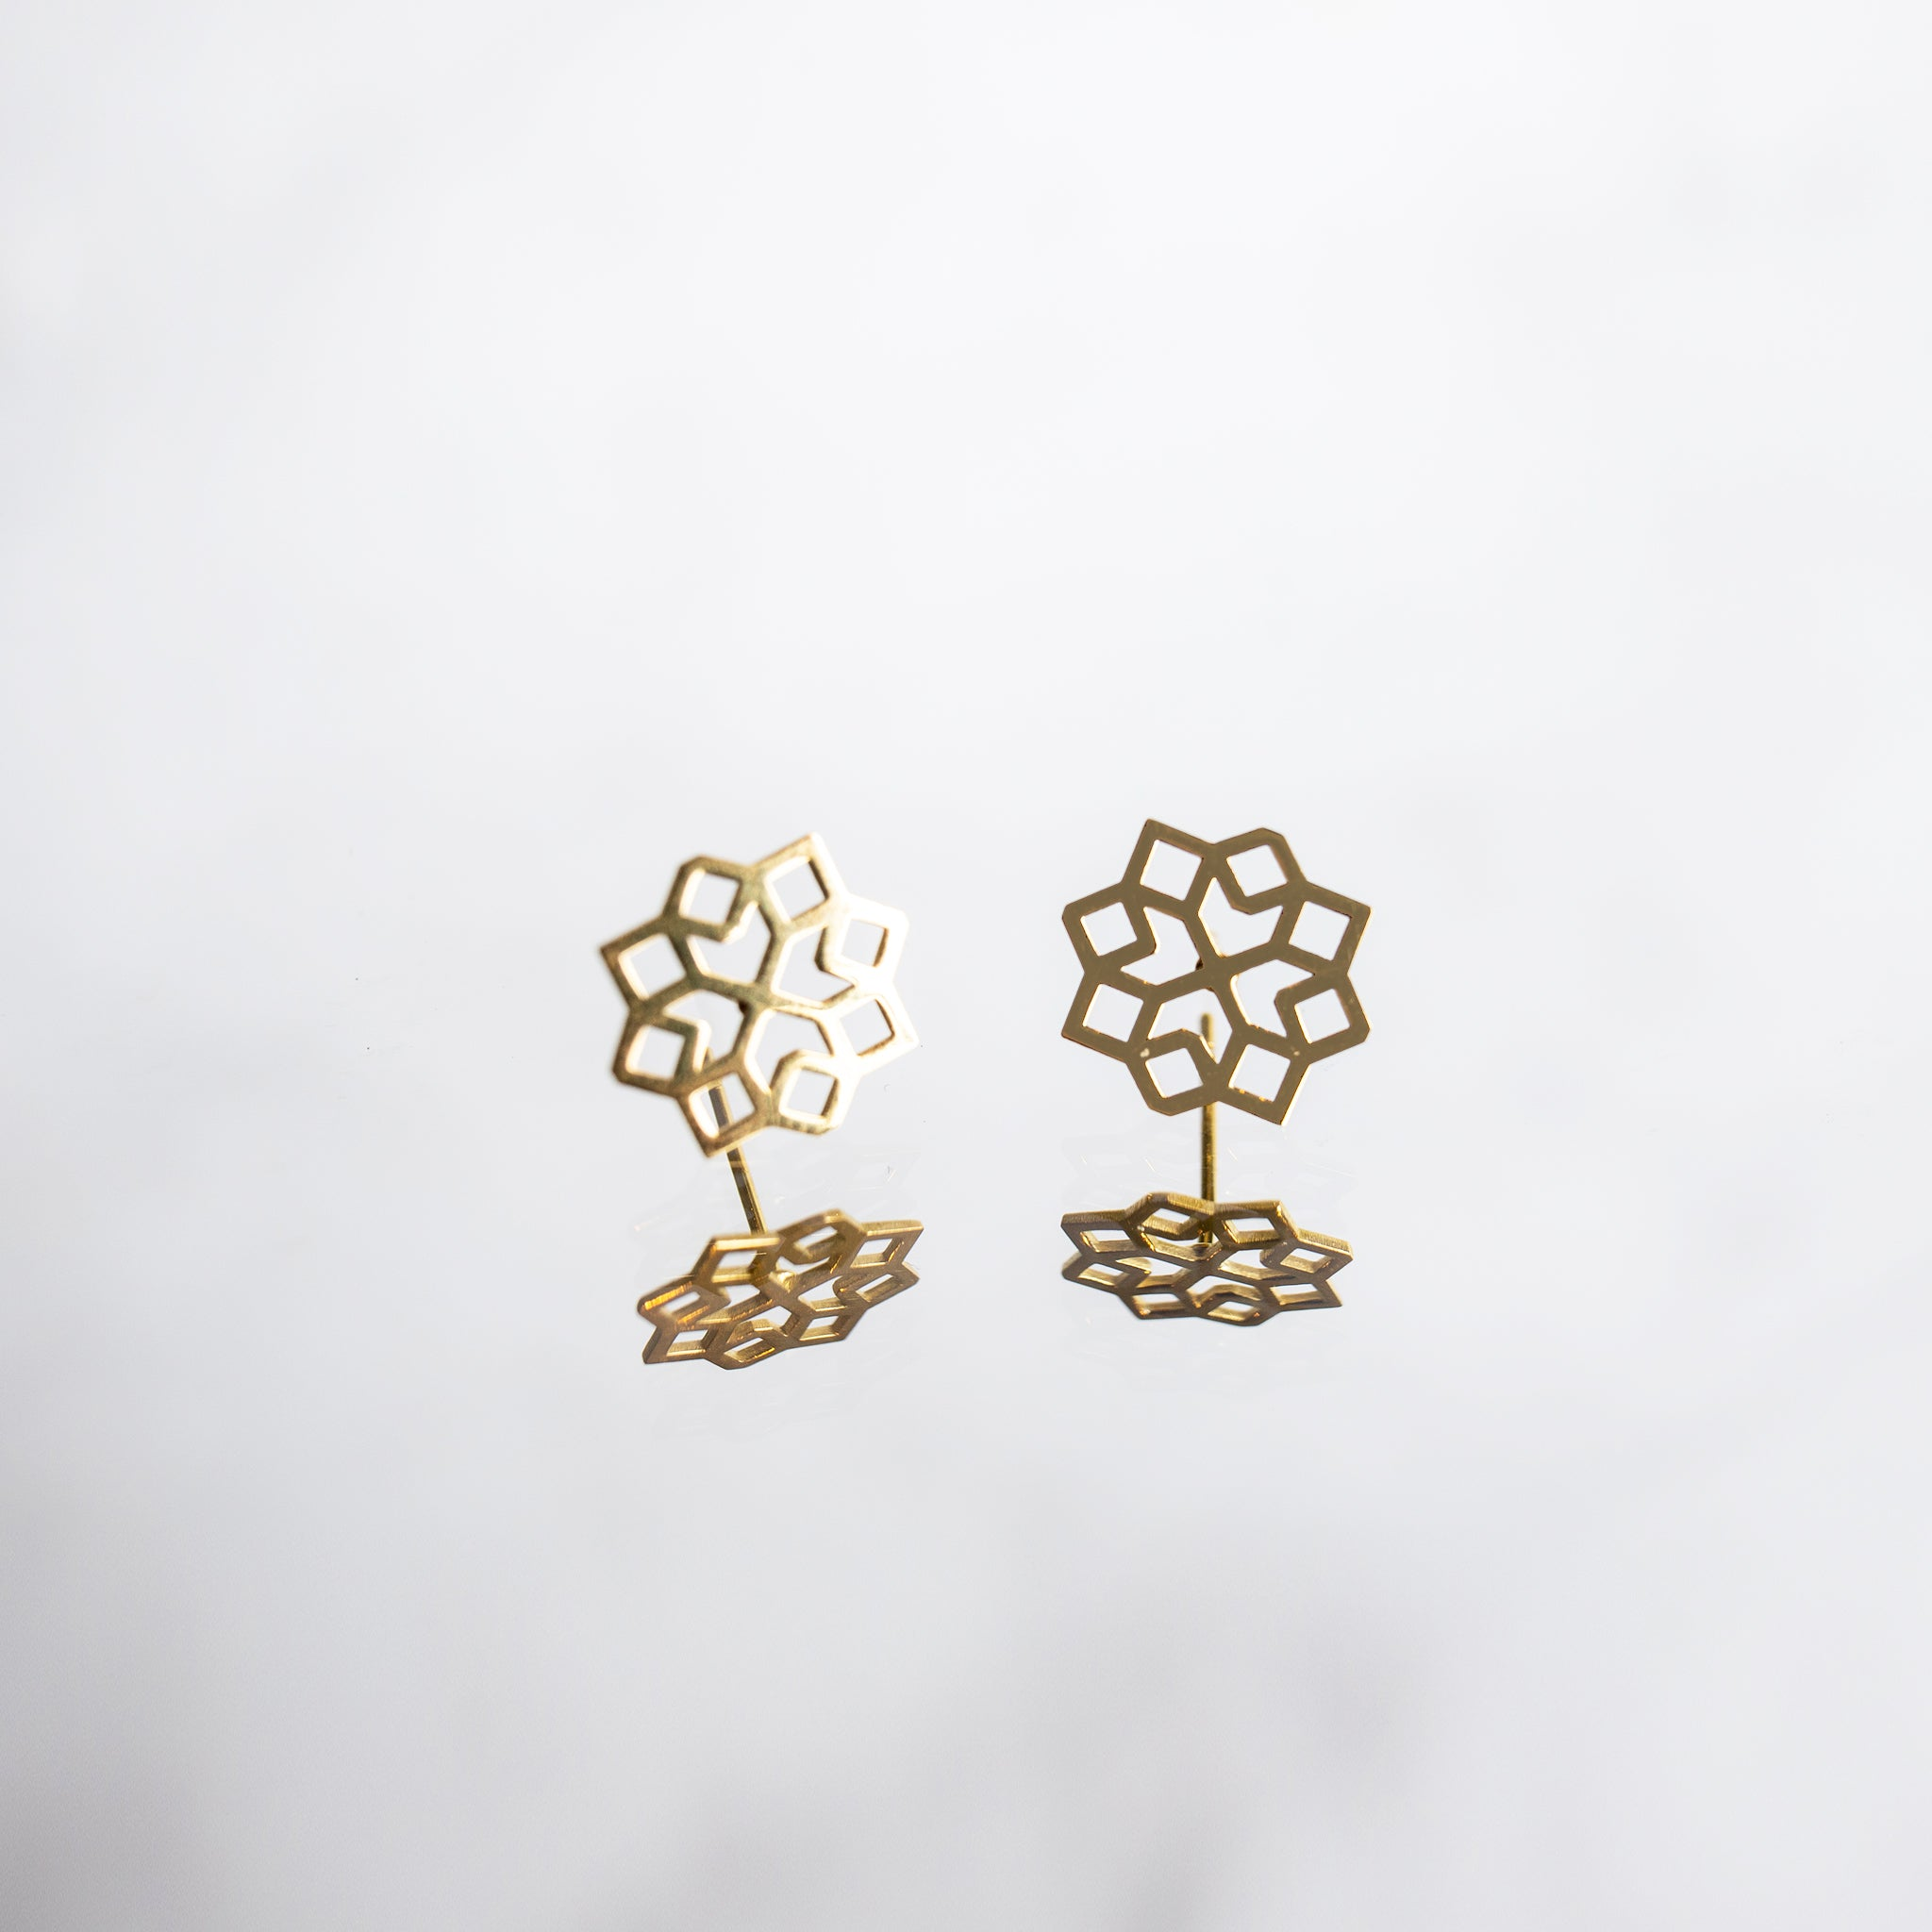 MillieJewelry  - Millié Jewelry - Granada Mini Earrings - Aretes - Diseño Mexicano - Hecho en México